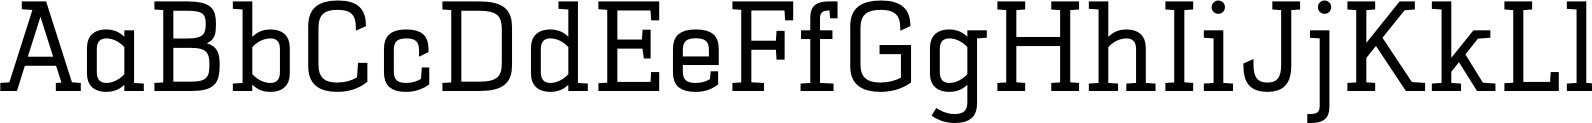 Selektor Slab Regular Font